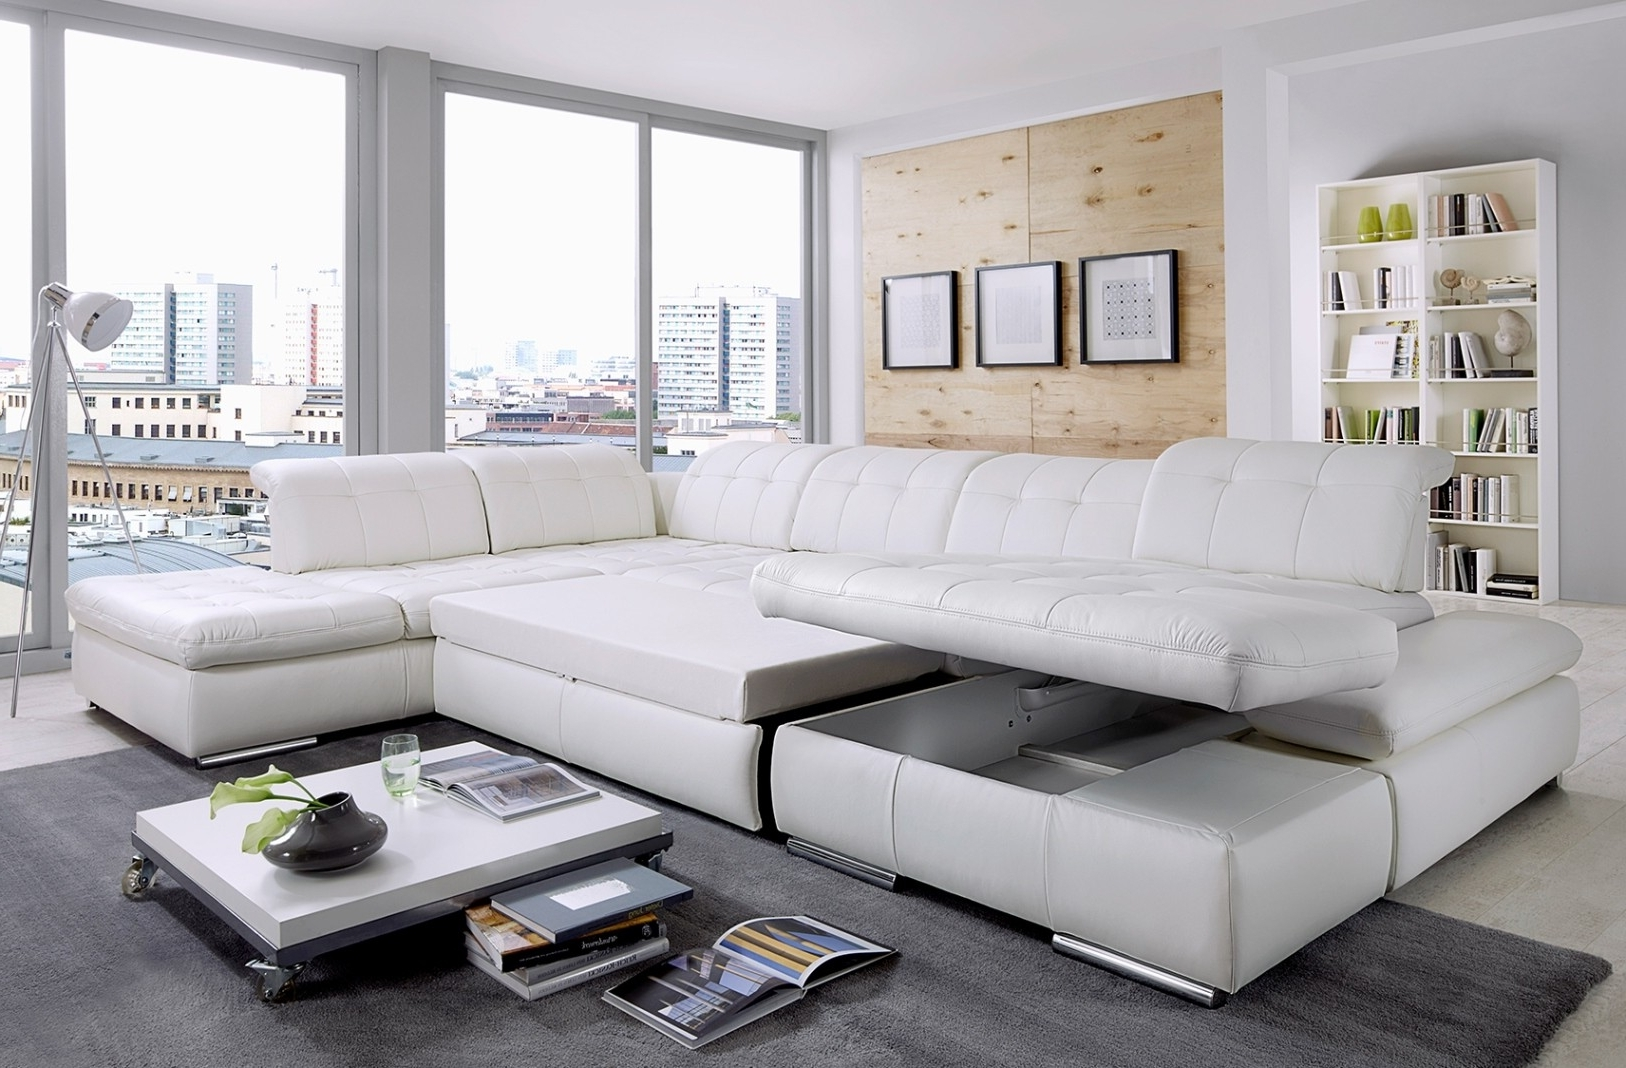 Nh Sectional Sofas Inside Current Best Modern Contemporary Furniture Stores Orlando Miami Florida Fl (View 11 of 20)